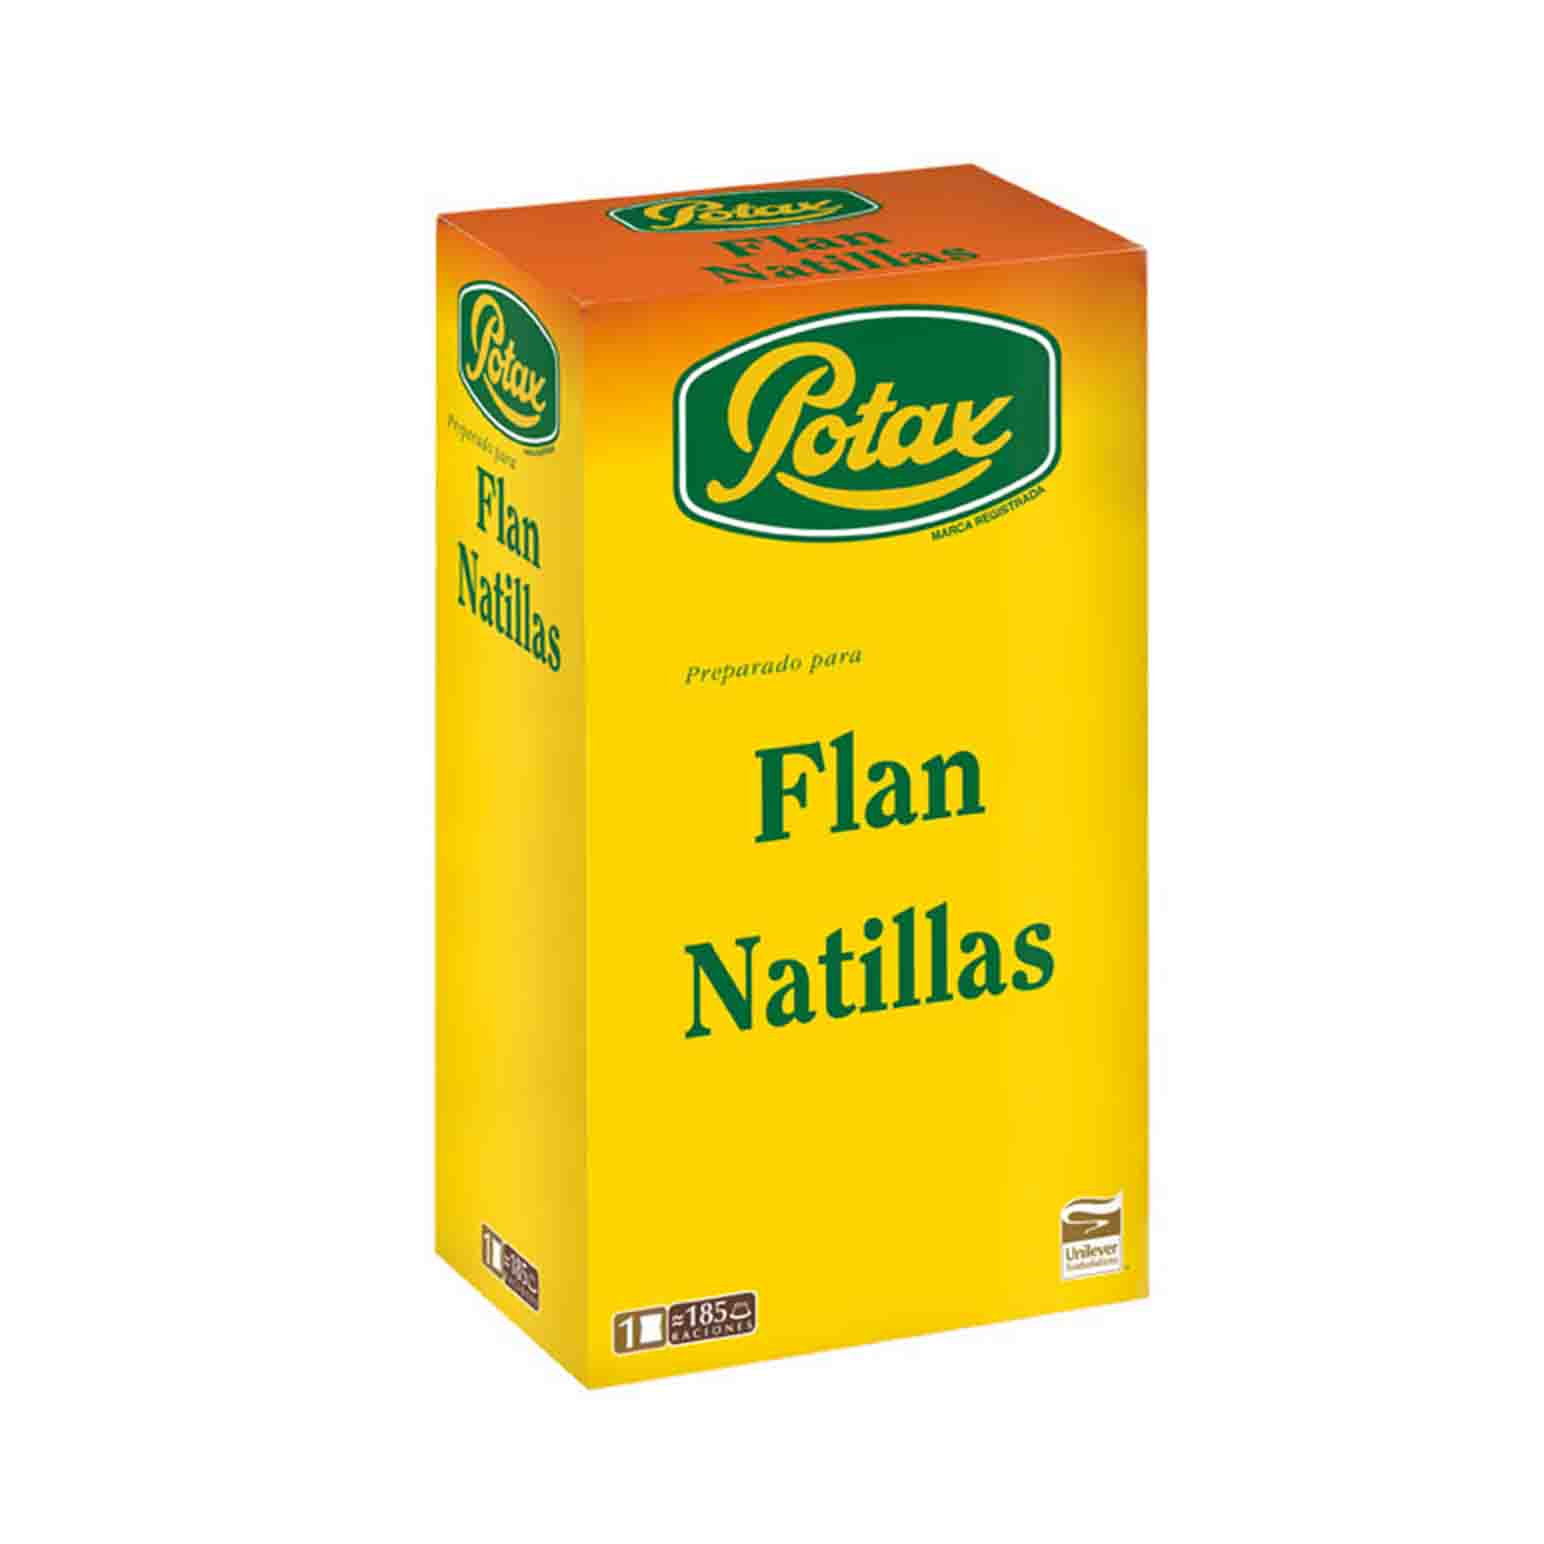 FLAN/NATILLAS POTAX C/ 12 EST